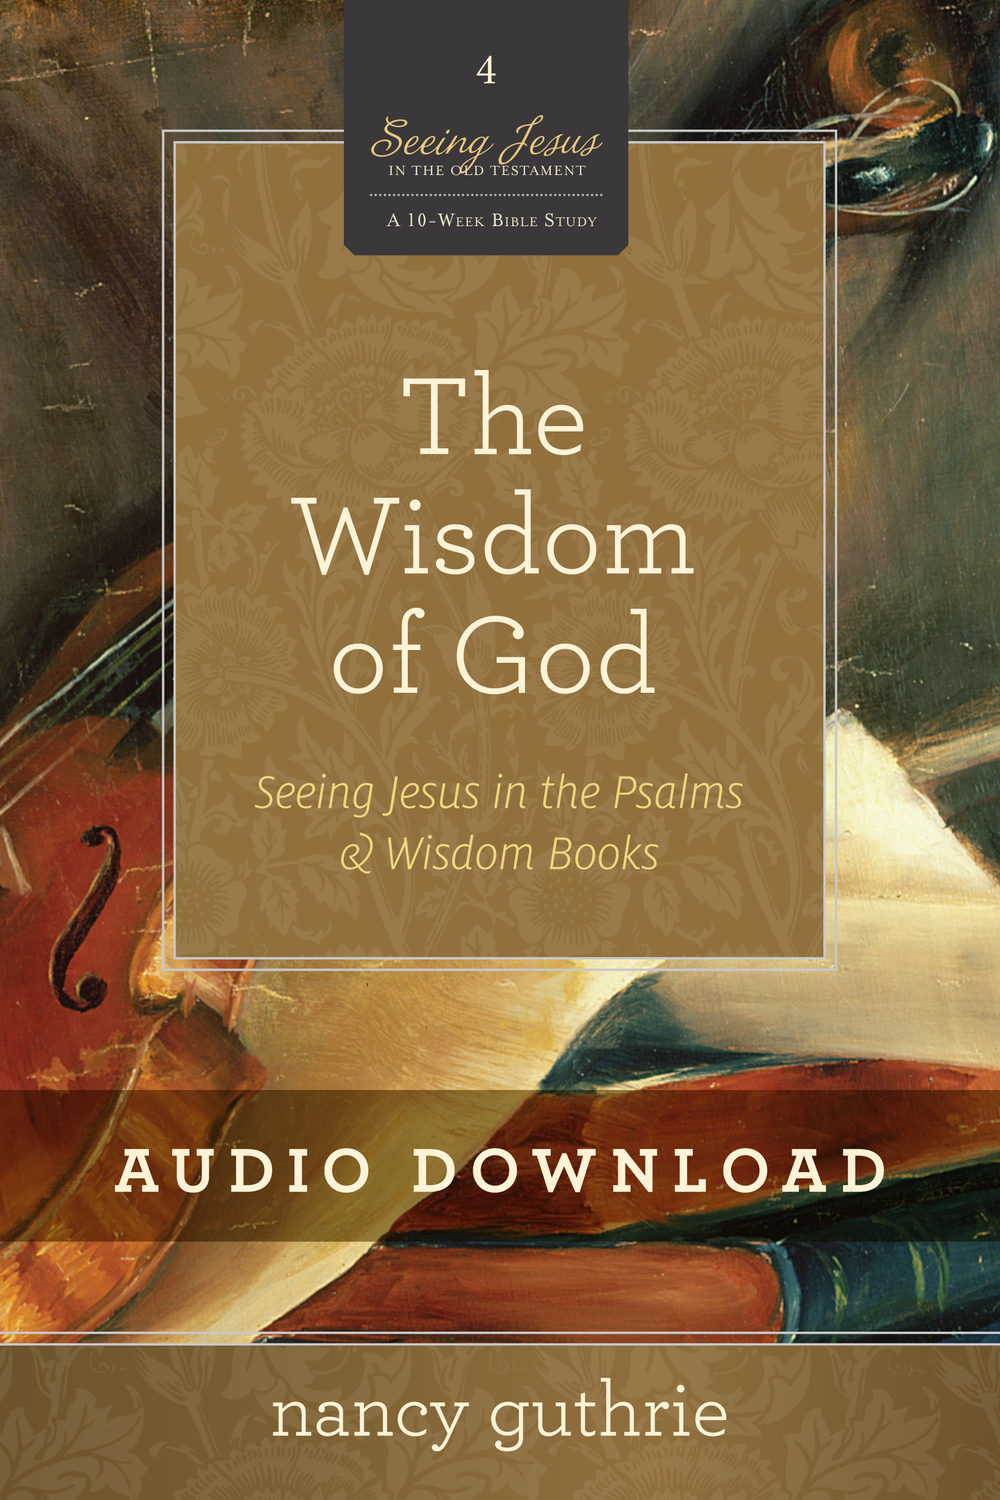 The Wisdom of God Audio Session 4 Download